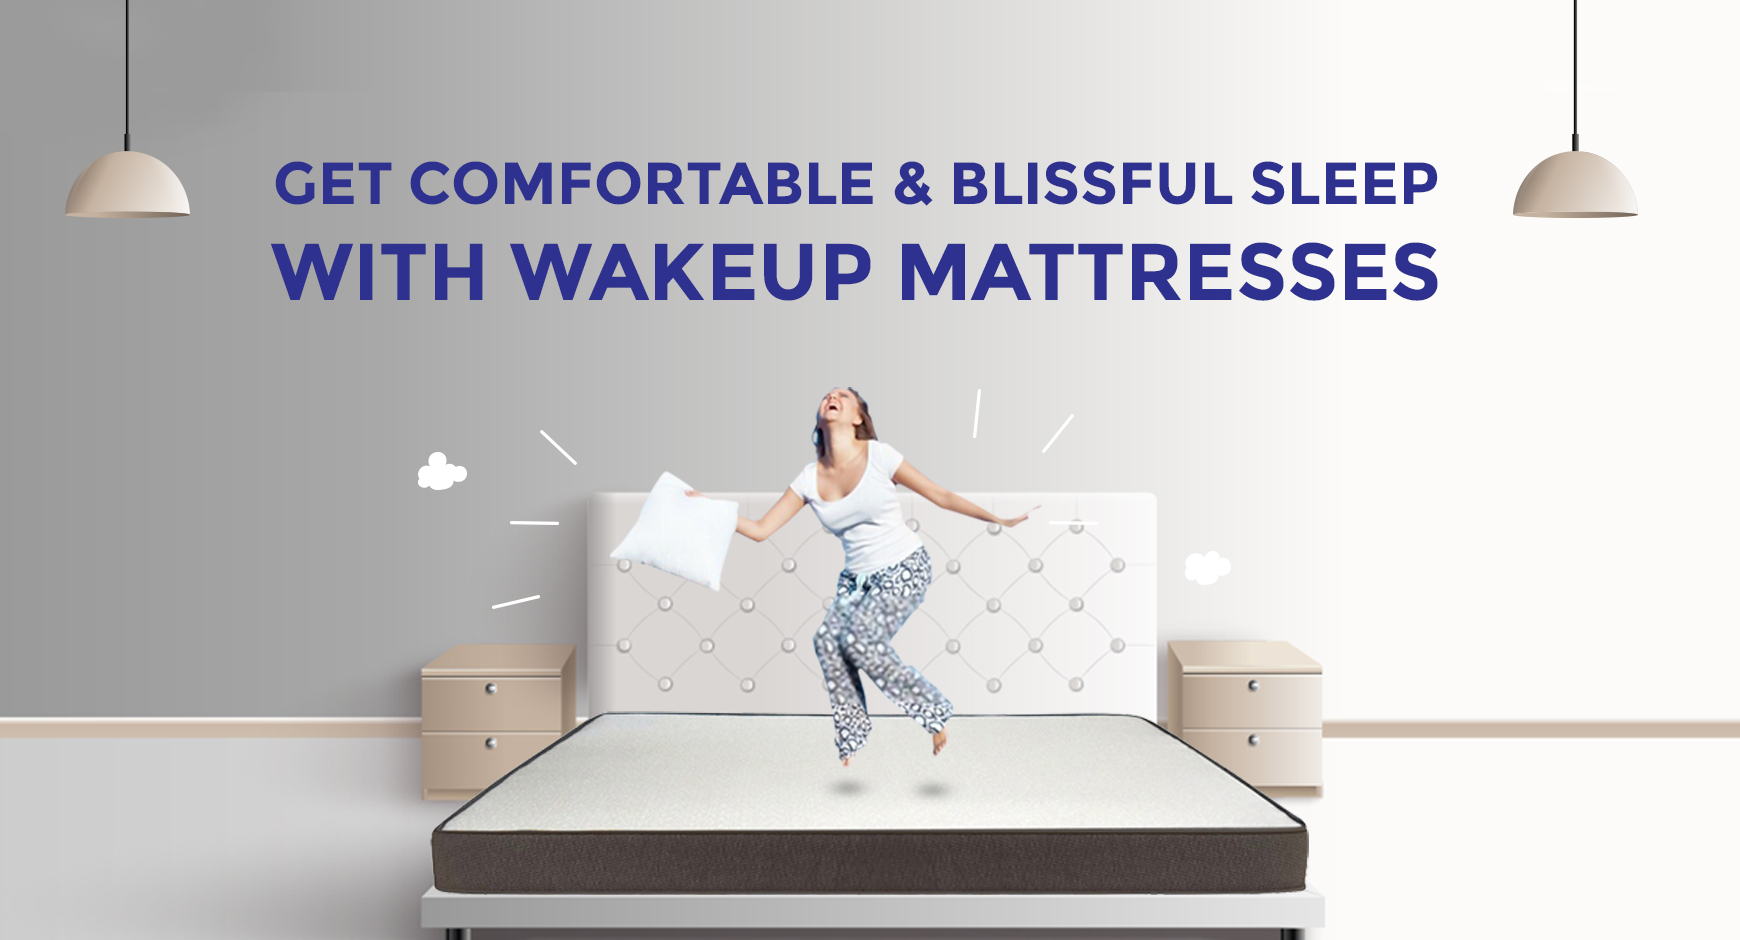 Get comfortable & blissful sleep with wakeup mattresses